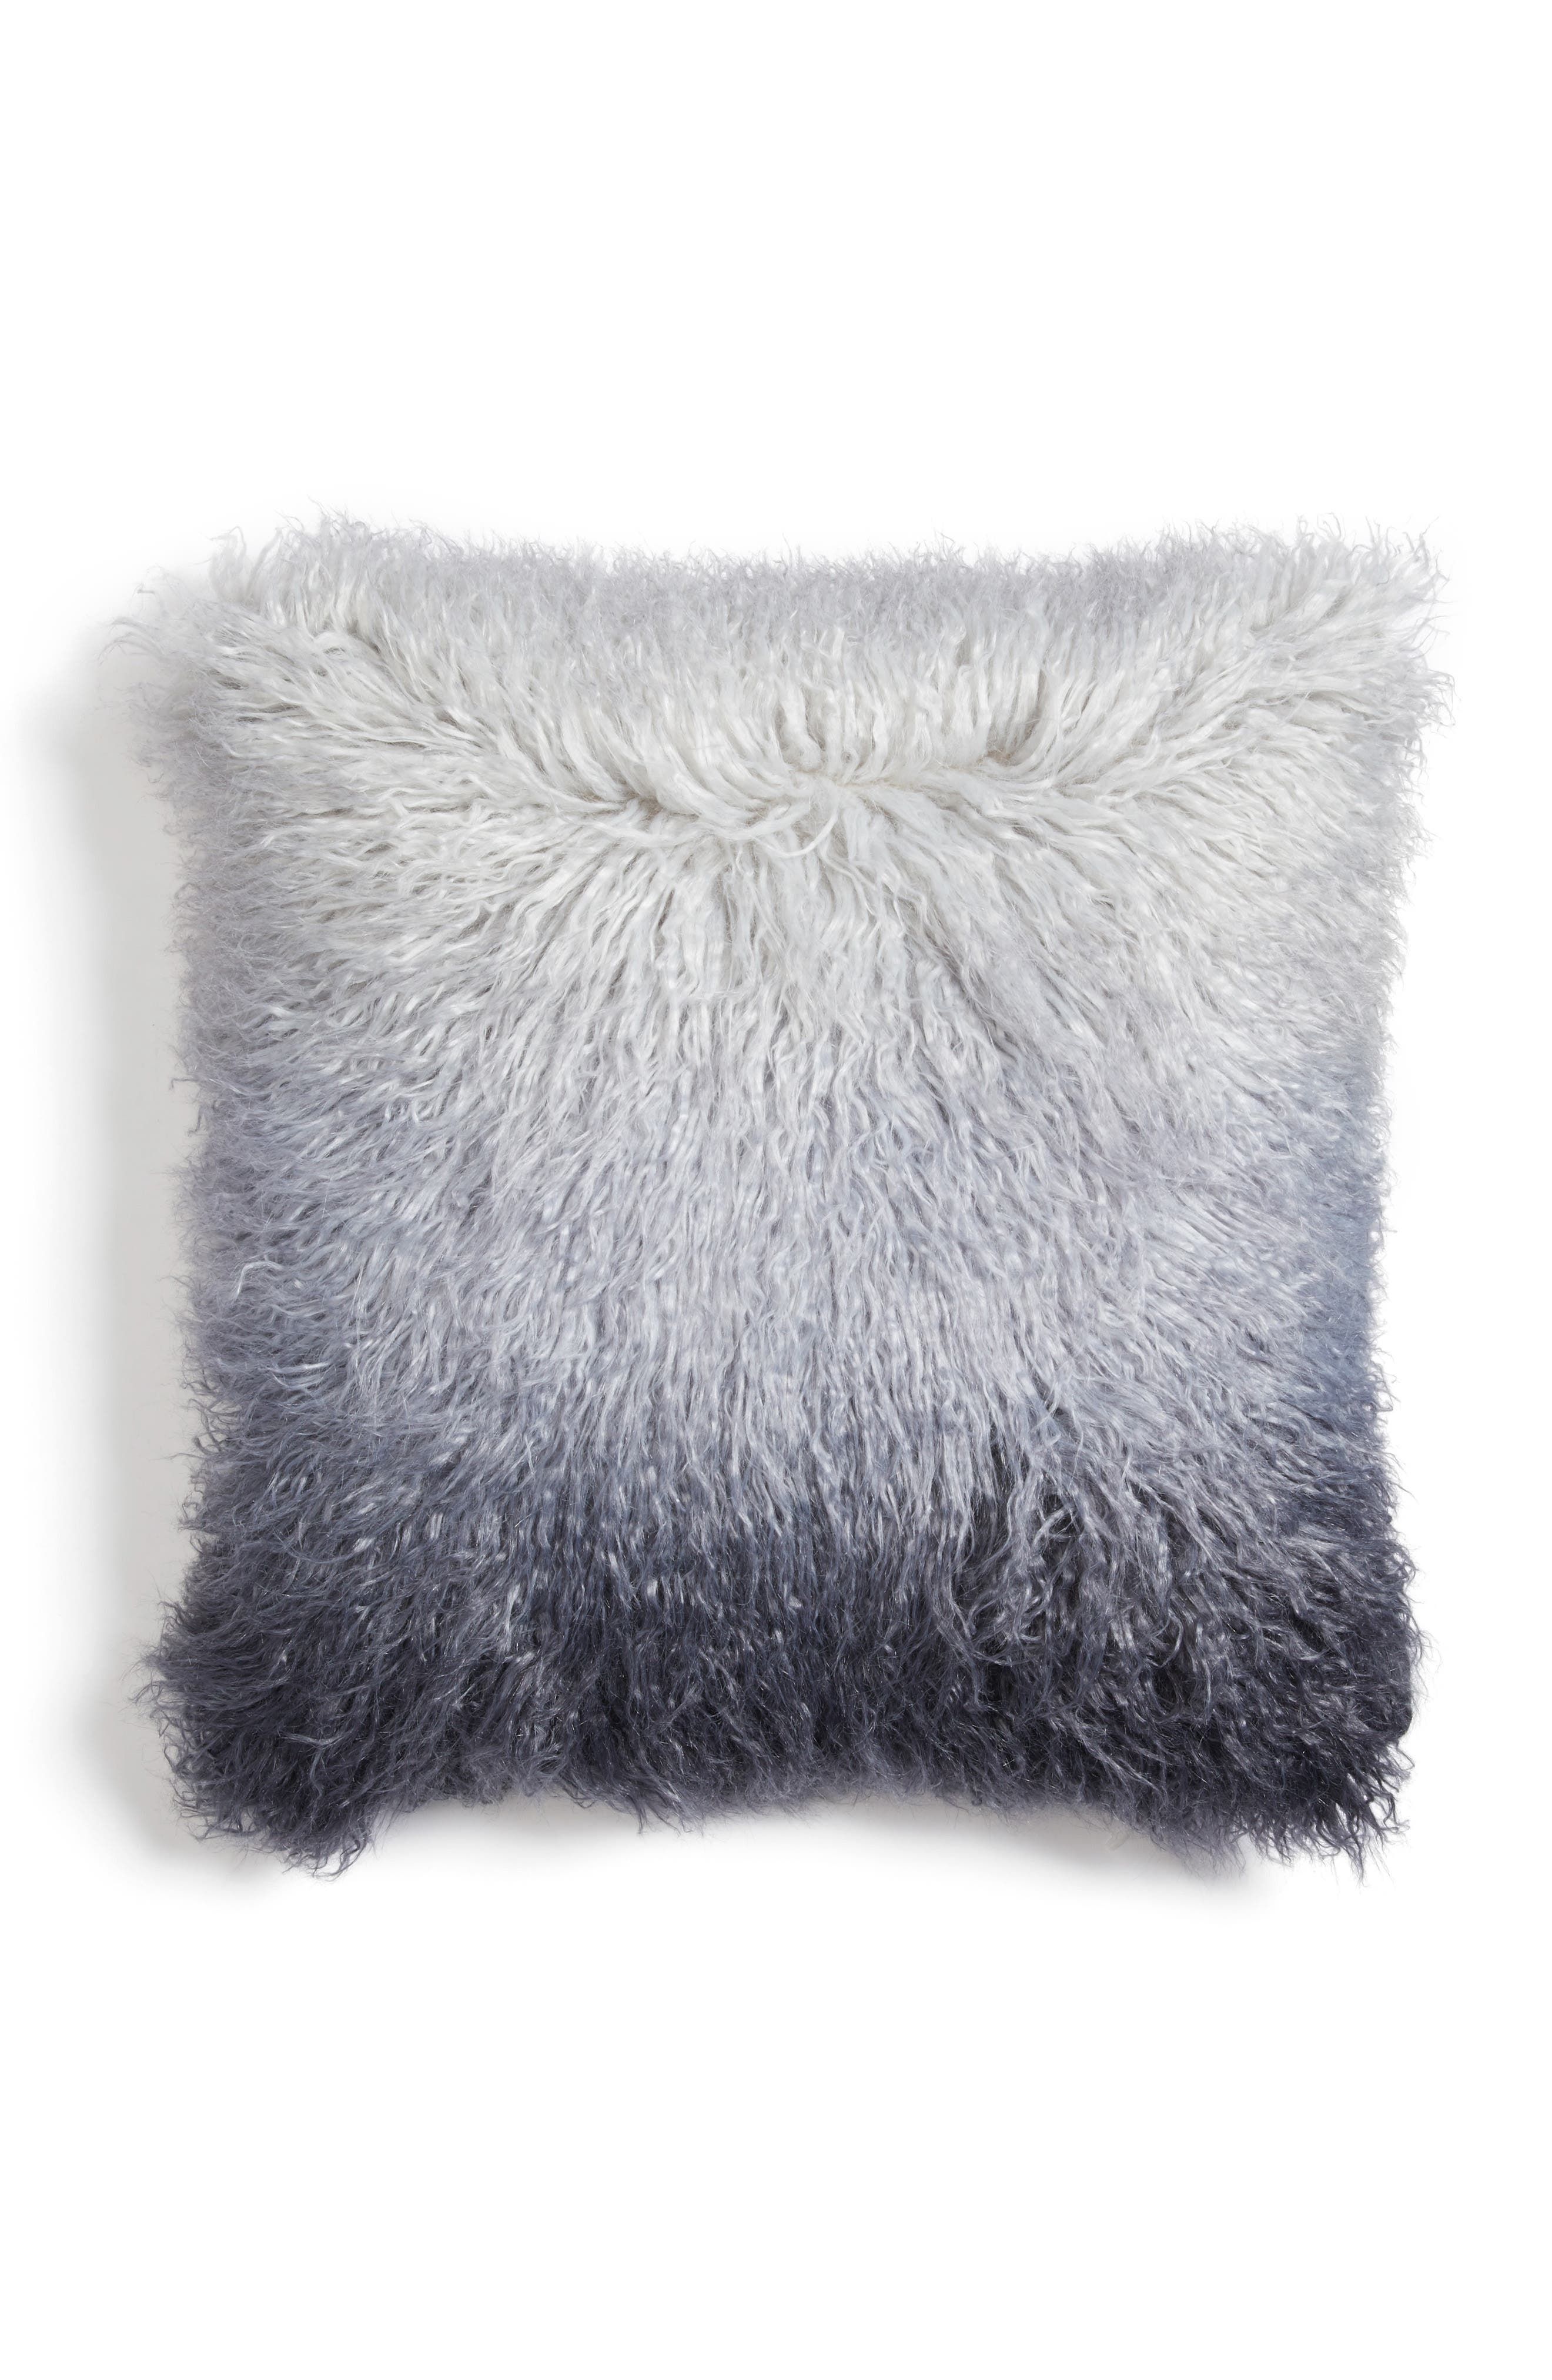 Main Image - Nordstrom at Home Ombré Faux Fur Flokati Accent Pillow